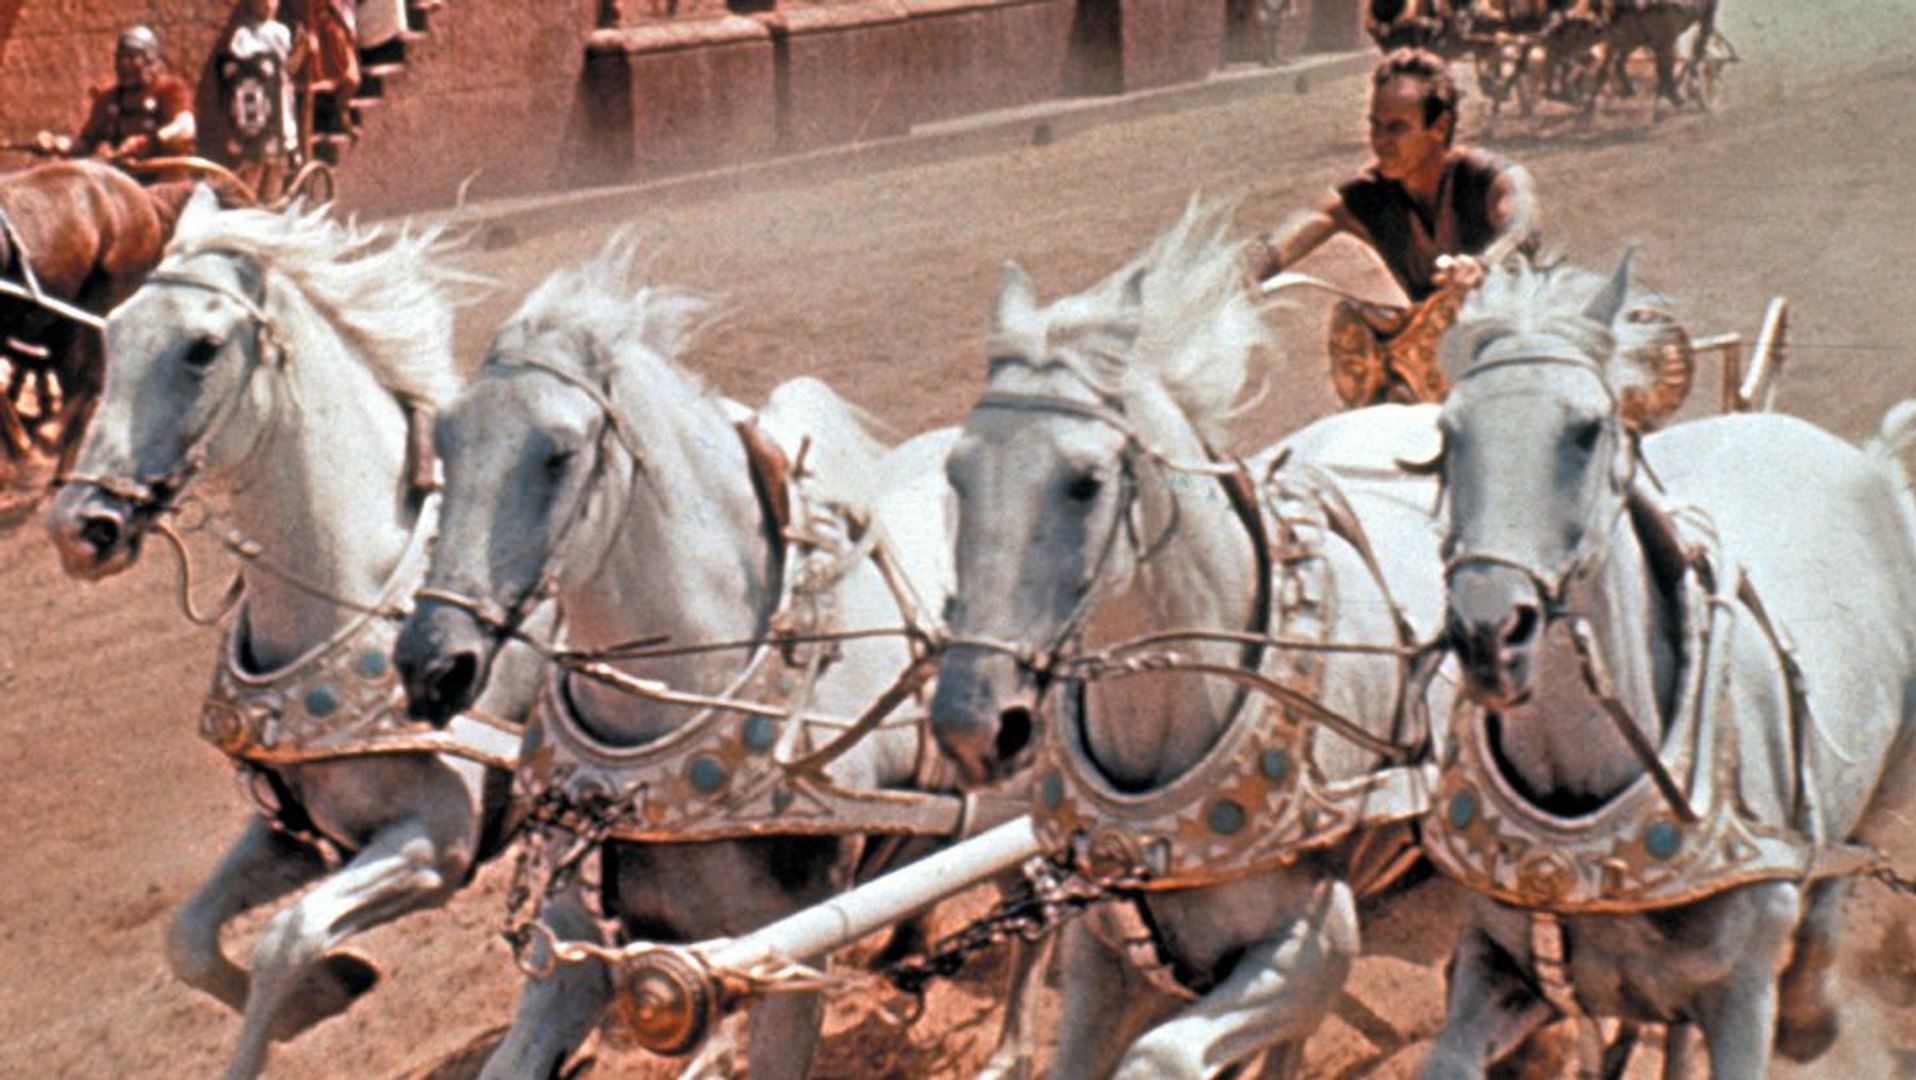 Ben-Hur Movie (1959) - Charlton Heston, Jack Hawkins, Stephen Boyd